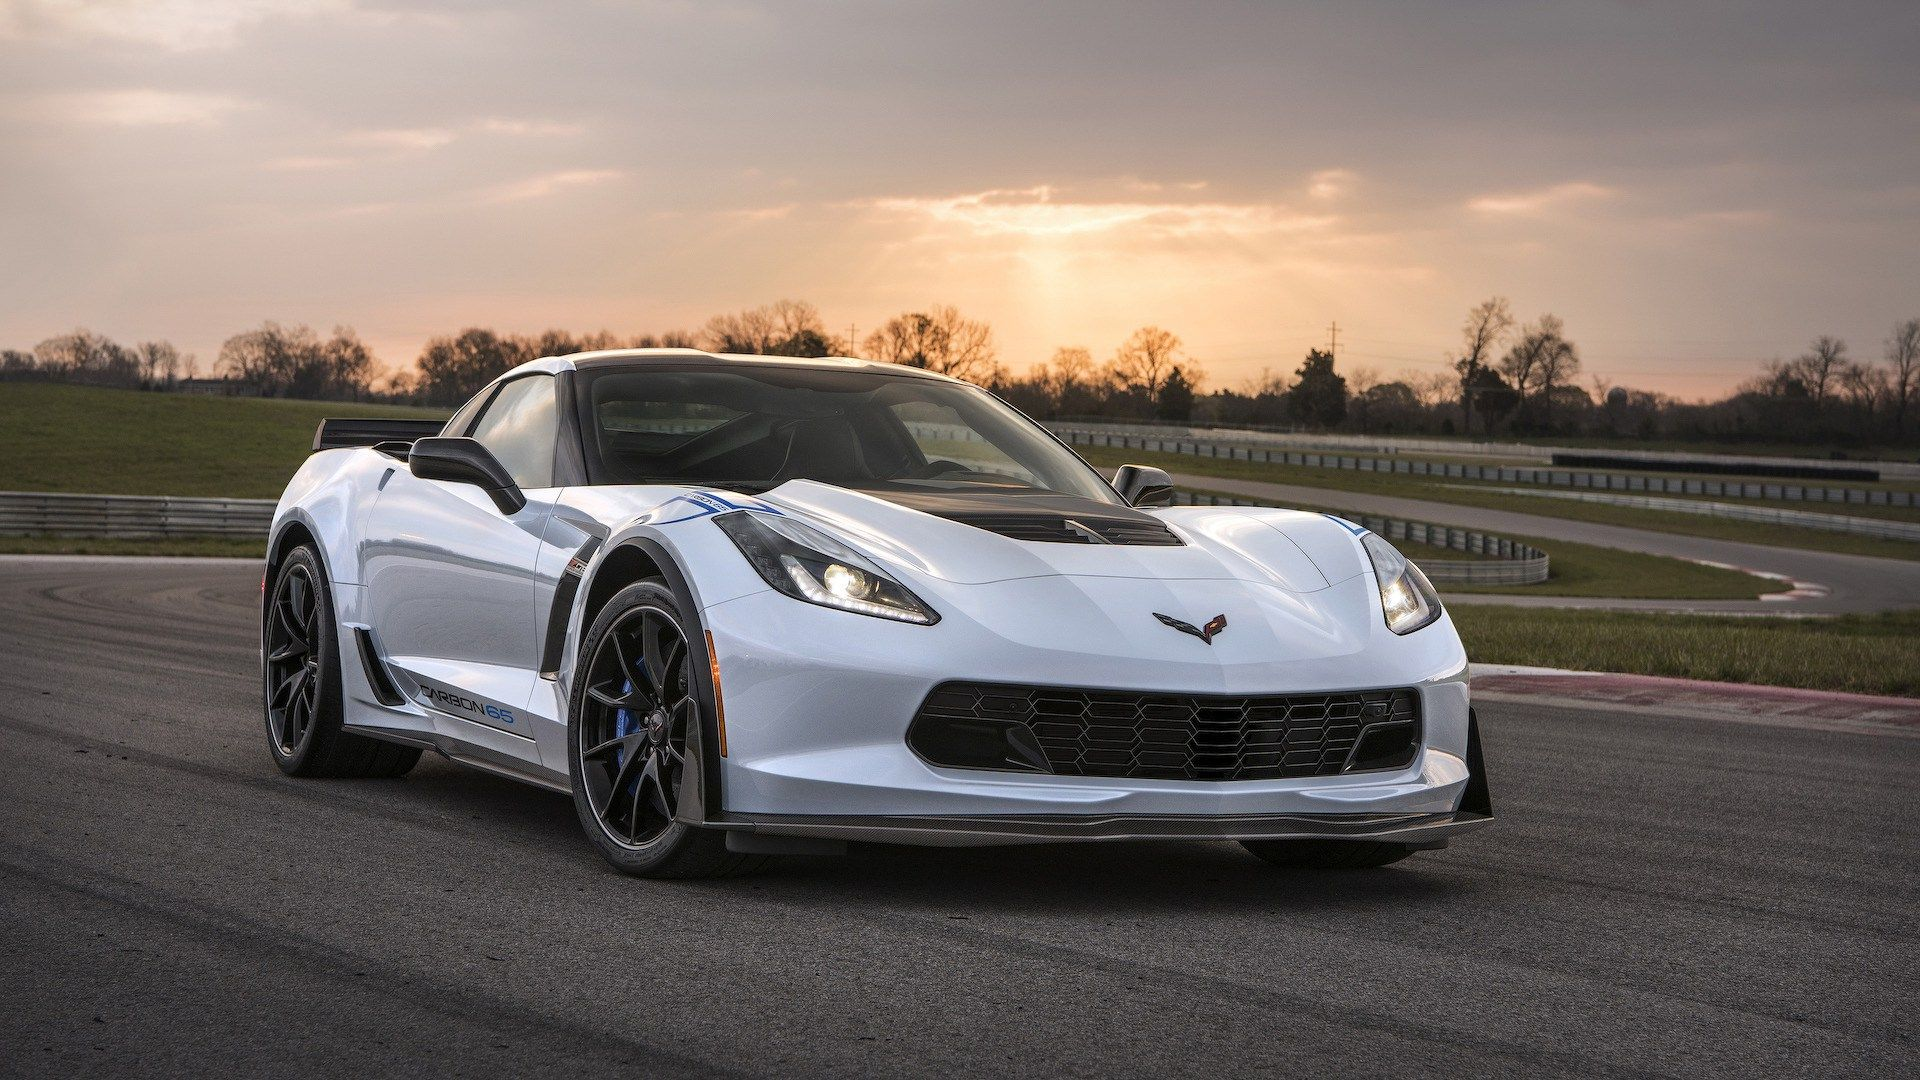 2020 Chevy Corvette Grand Sport Engine Price And Release Date